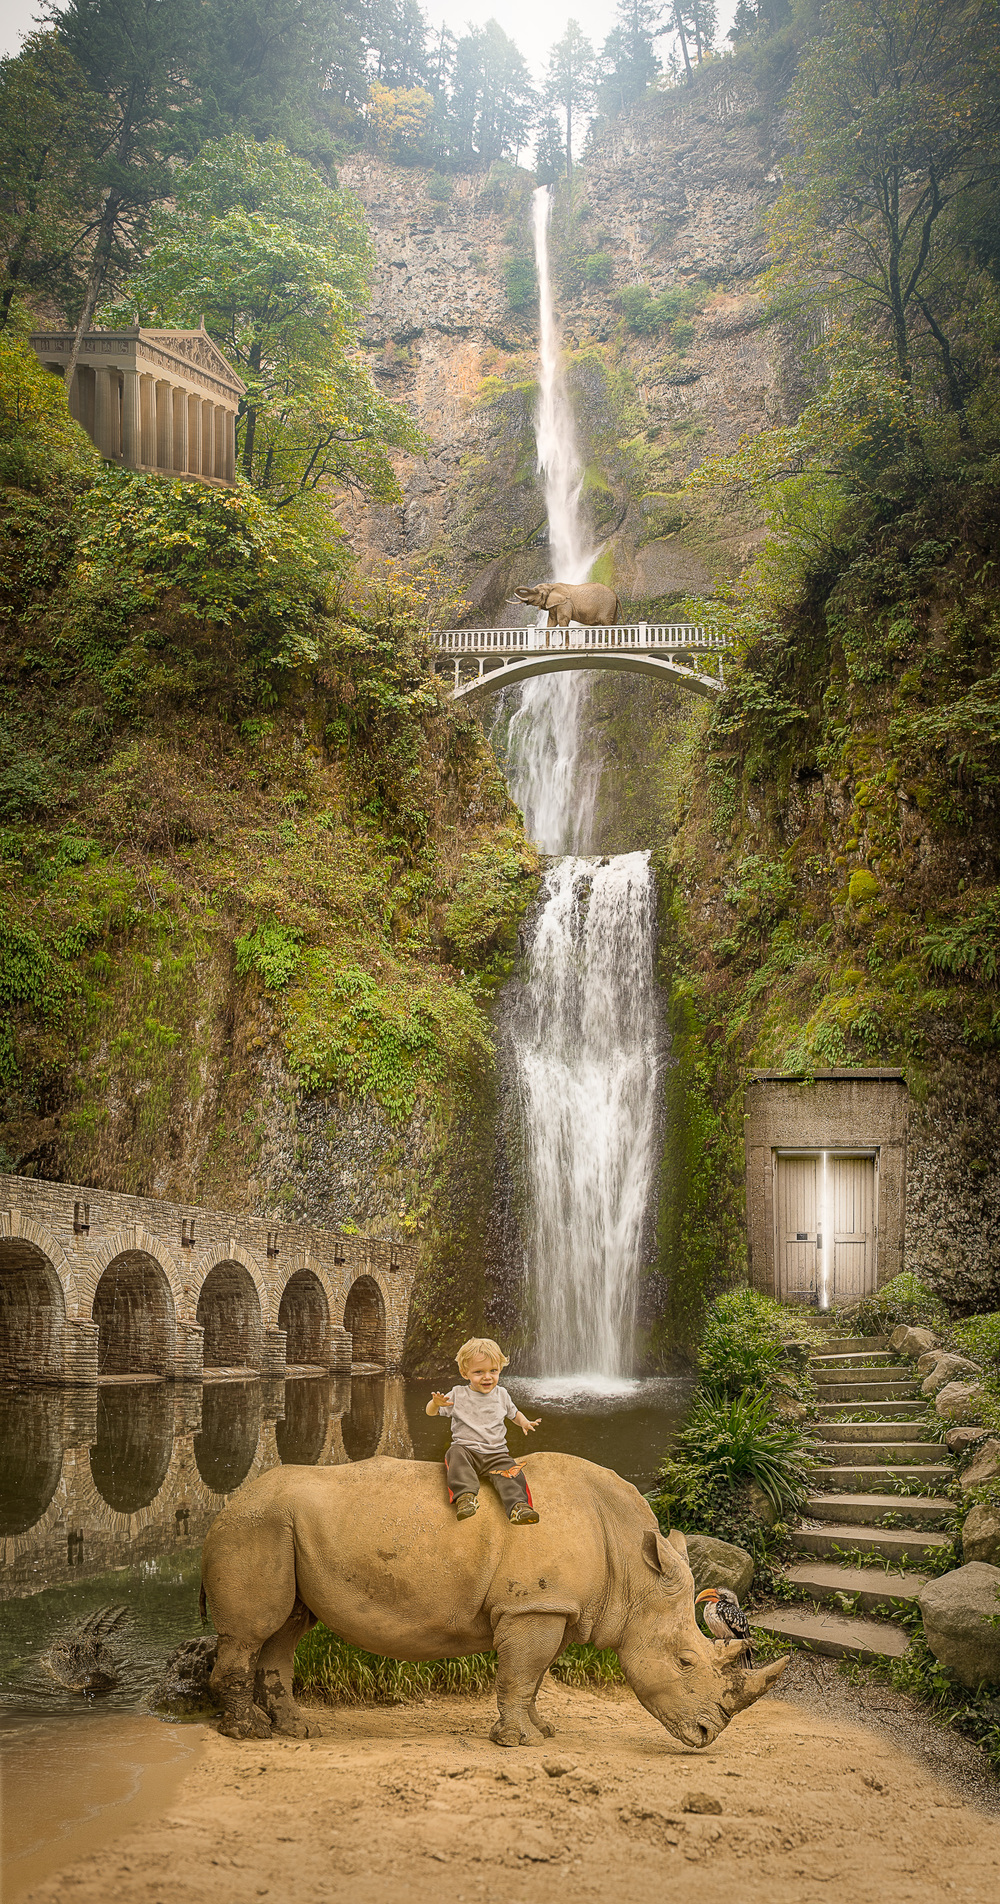 Photo manipulation & composite of a boy on rhinoceros near a waterfall